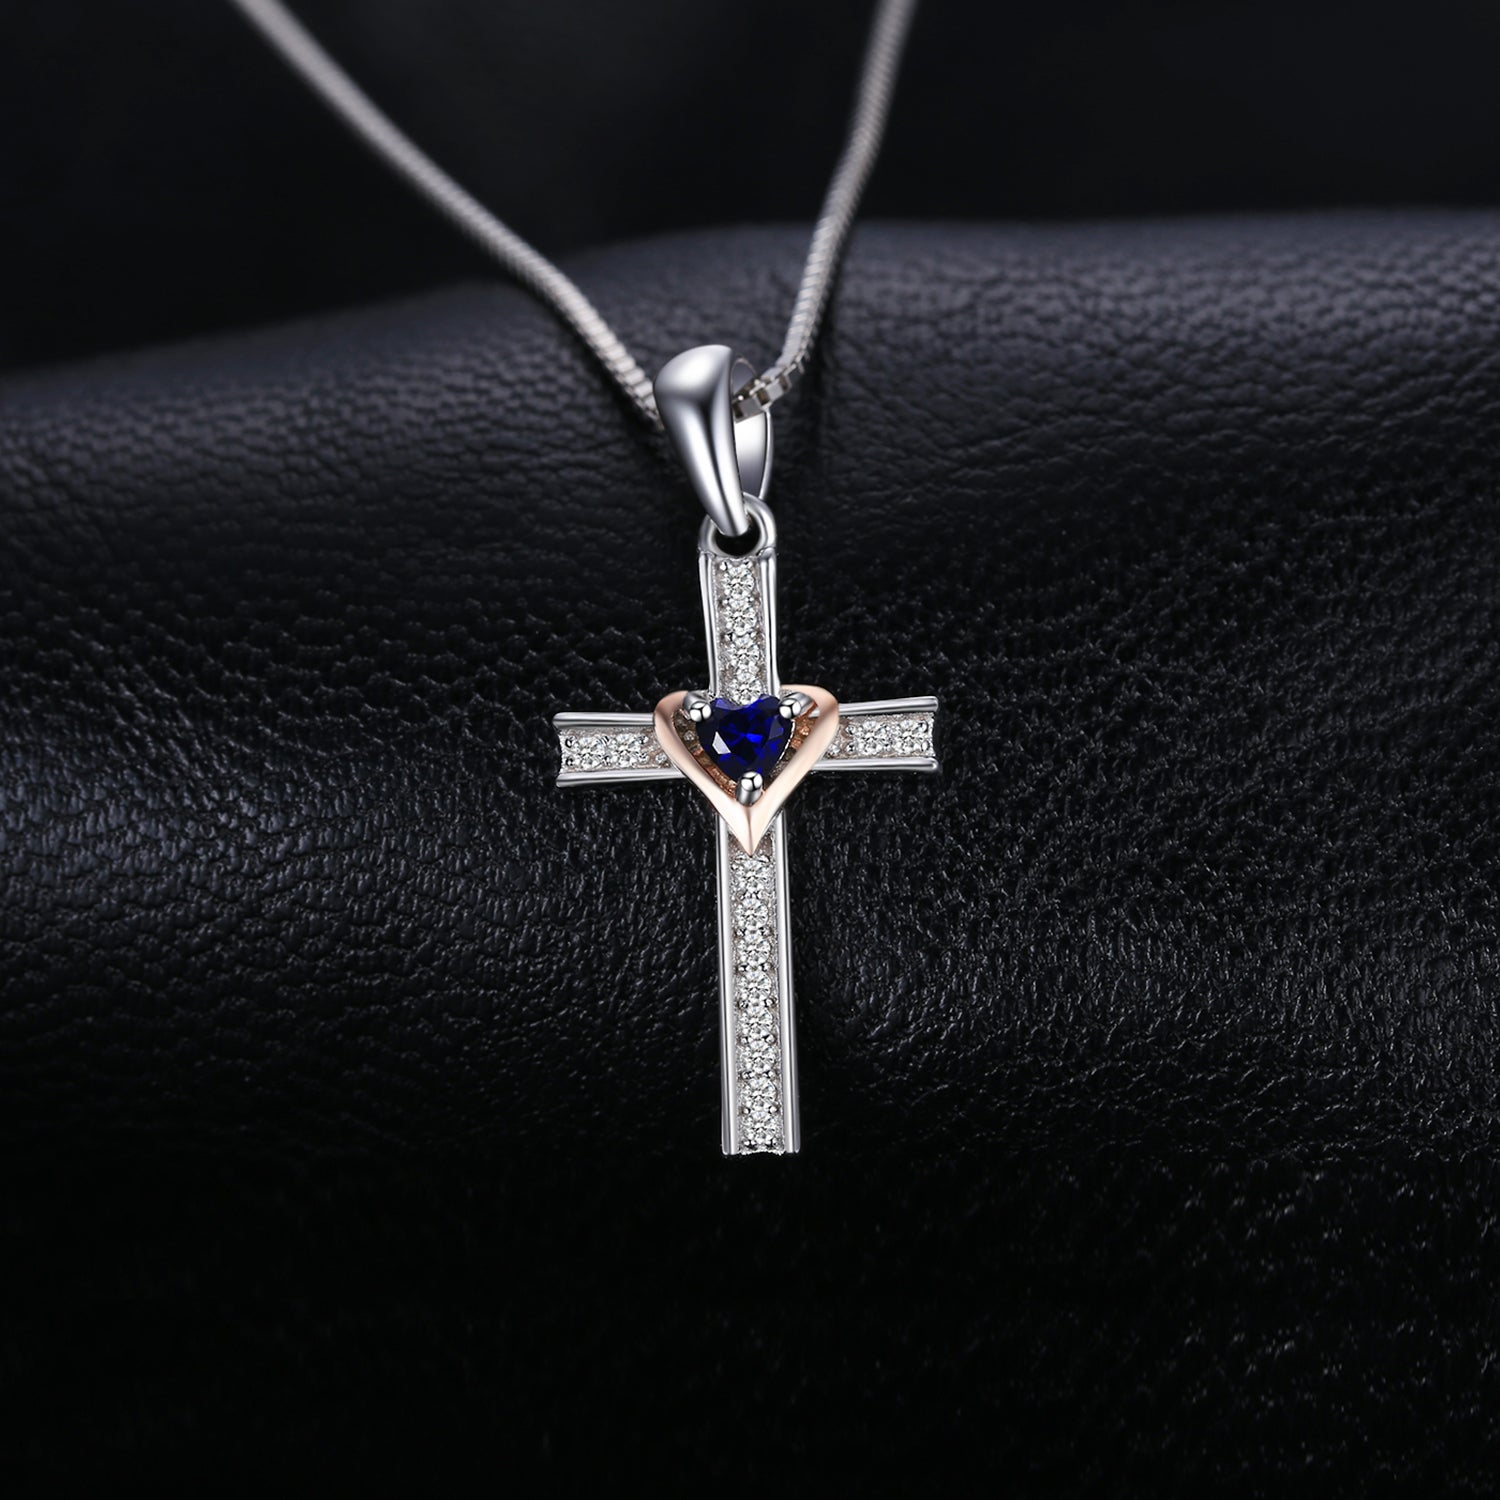 Cross Heart Created Blue Sapphire Pendant Necklace 925 Sterling Silver Gemstones Choker Statement Necklace Women Without Chain - BEAUVAN